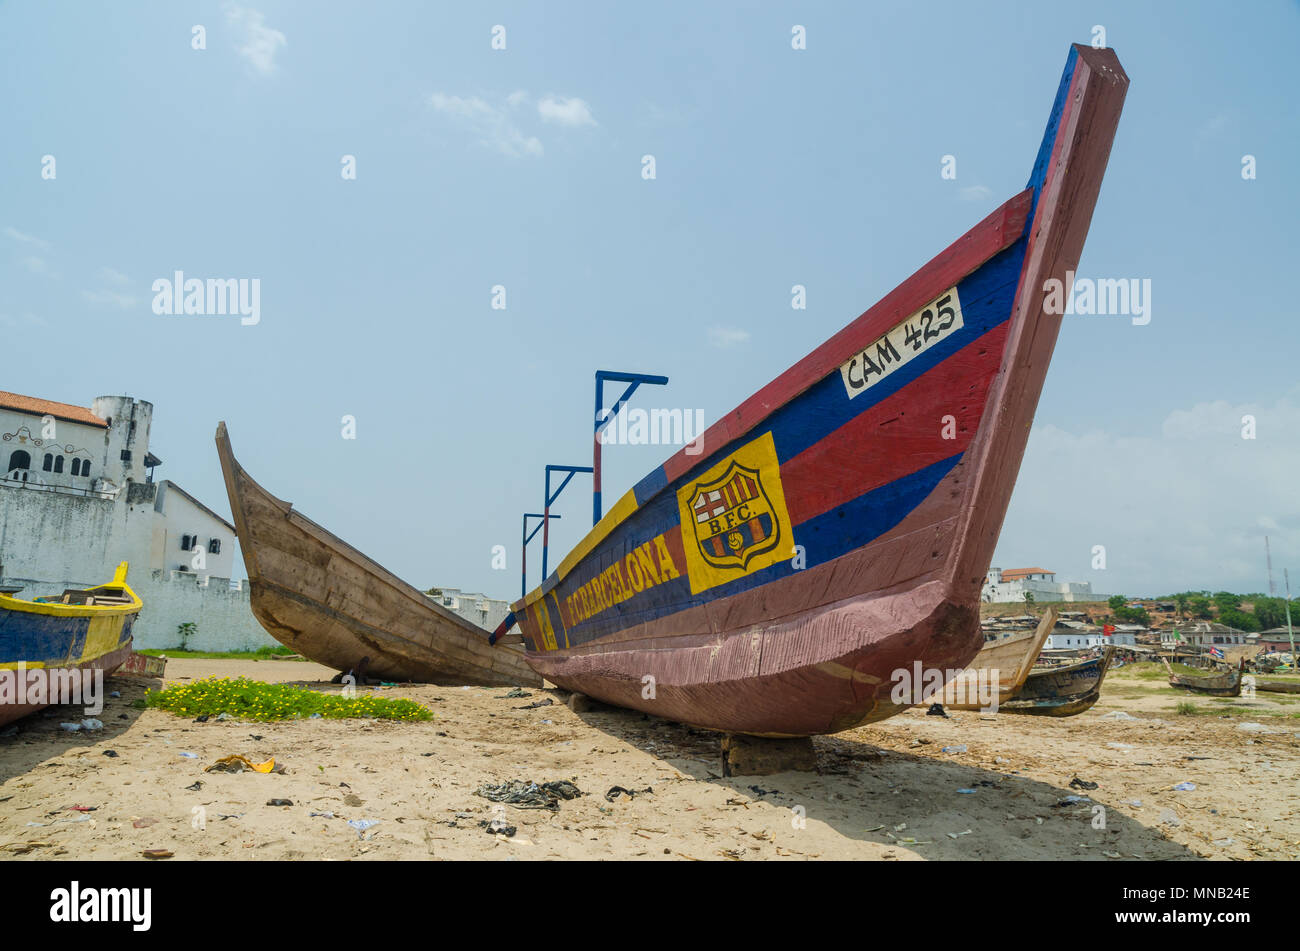 Wooden fishing boat on beach painted with FC Barcelona football club colours - Stock Image